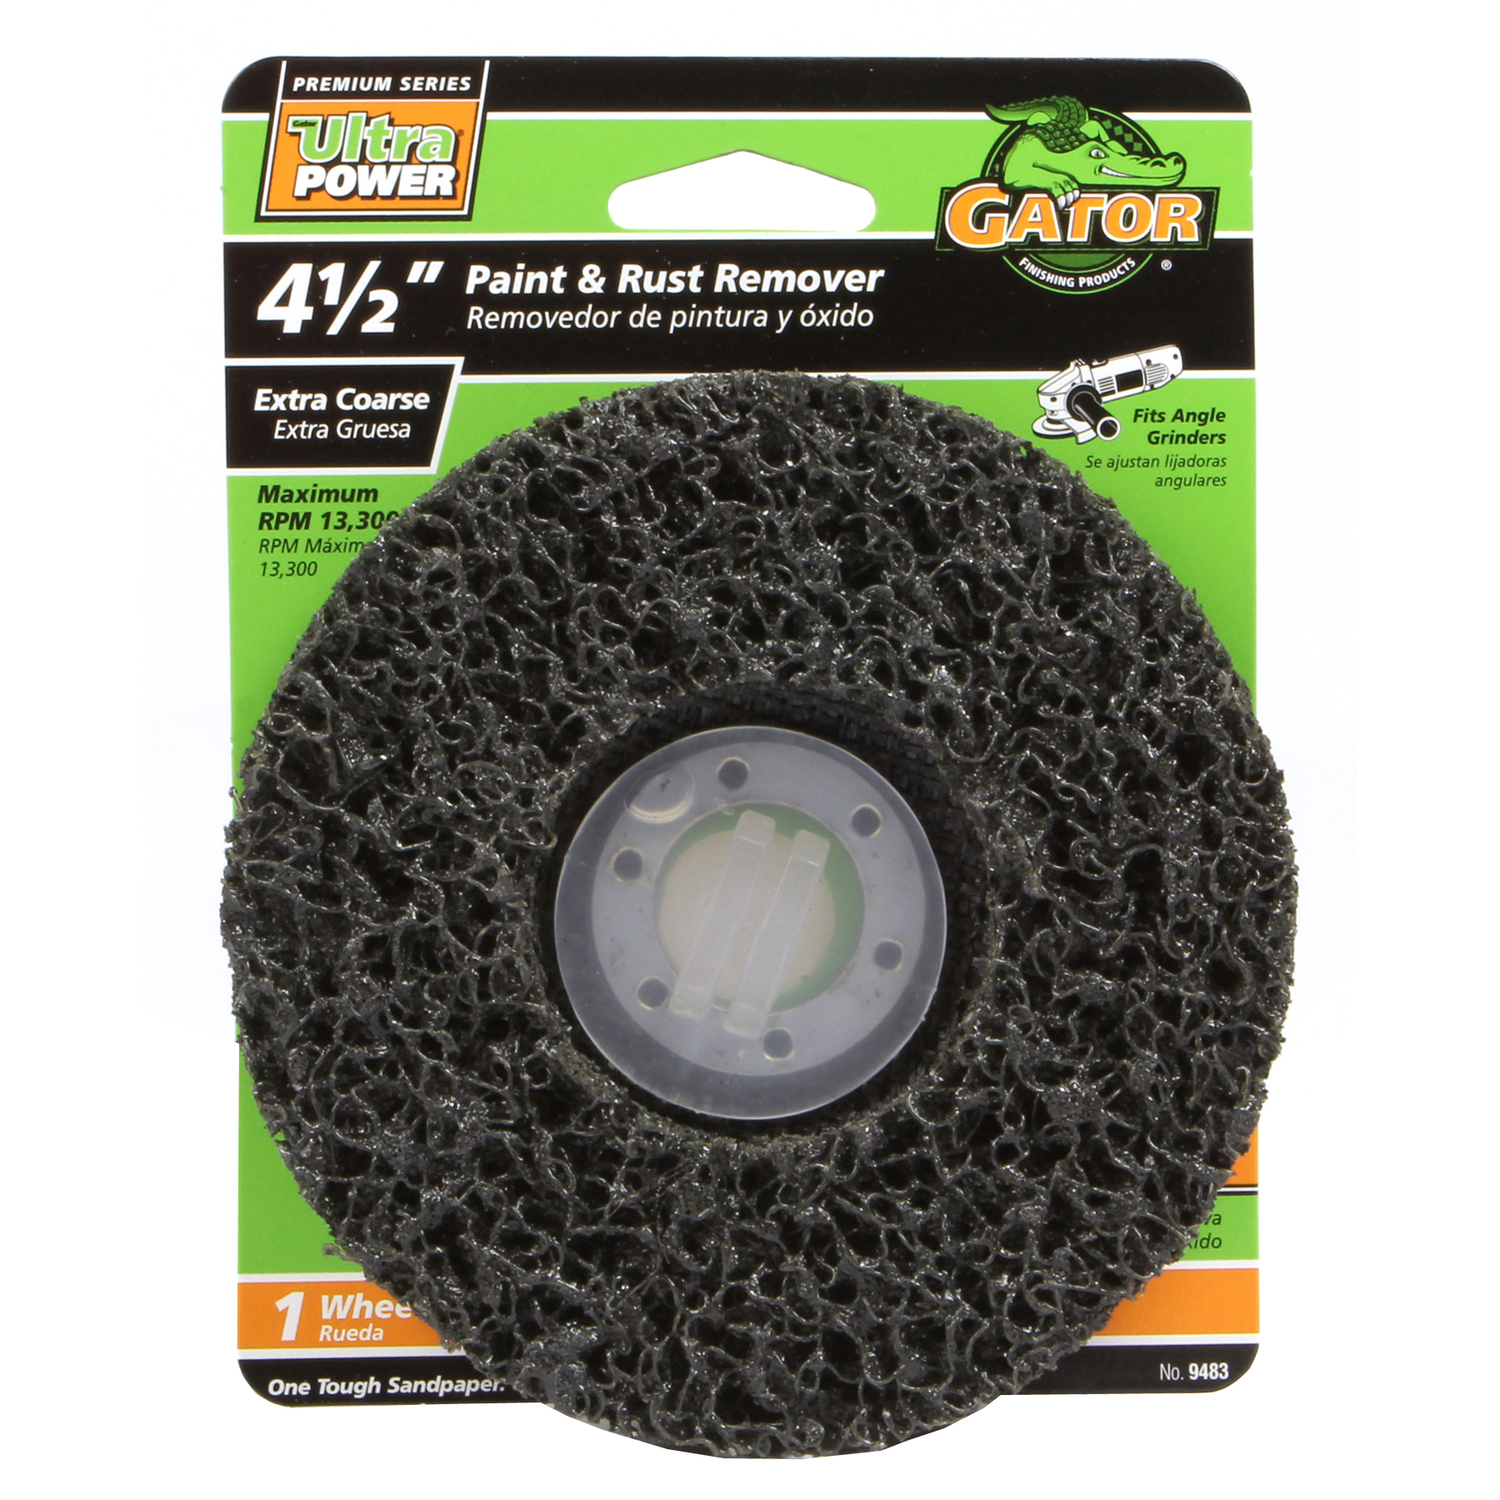 Gator Garage Wheel Protector Gator 4 5 In Silicon Carbide Center Mount Paint And Rust Remover